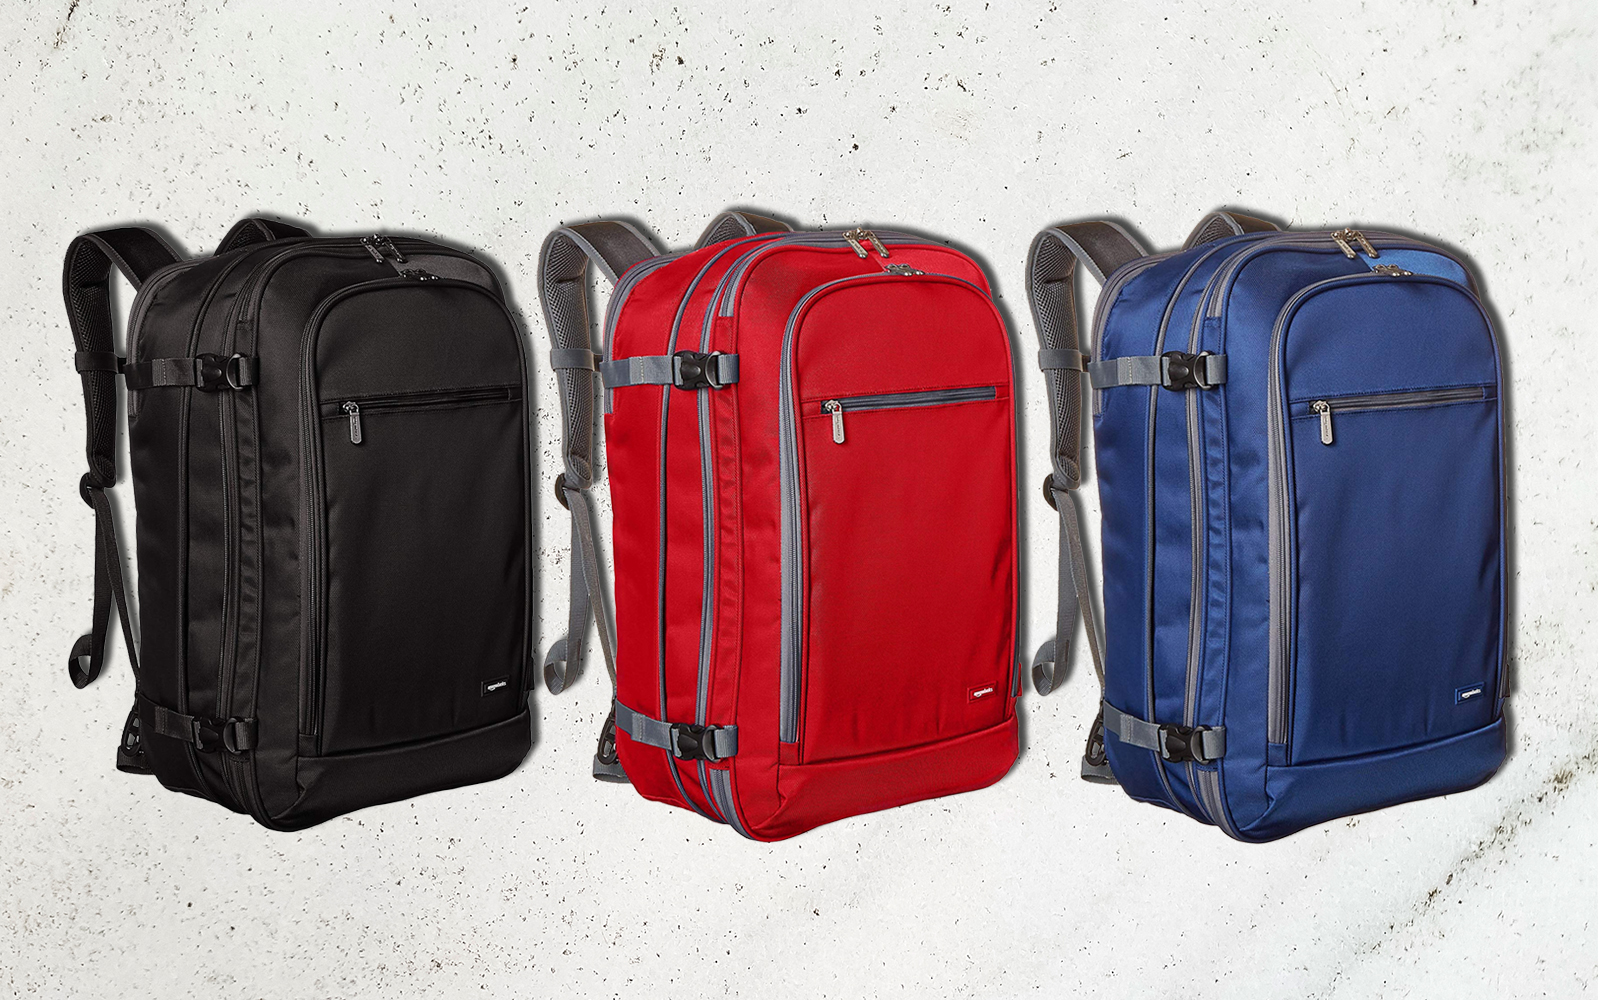 This Travel Backpack Is the Perfect Carry-on, According to Hundreds of Amazon Reviews